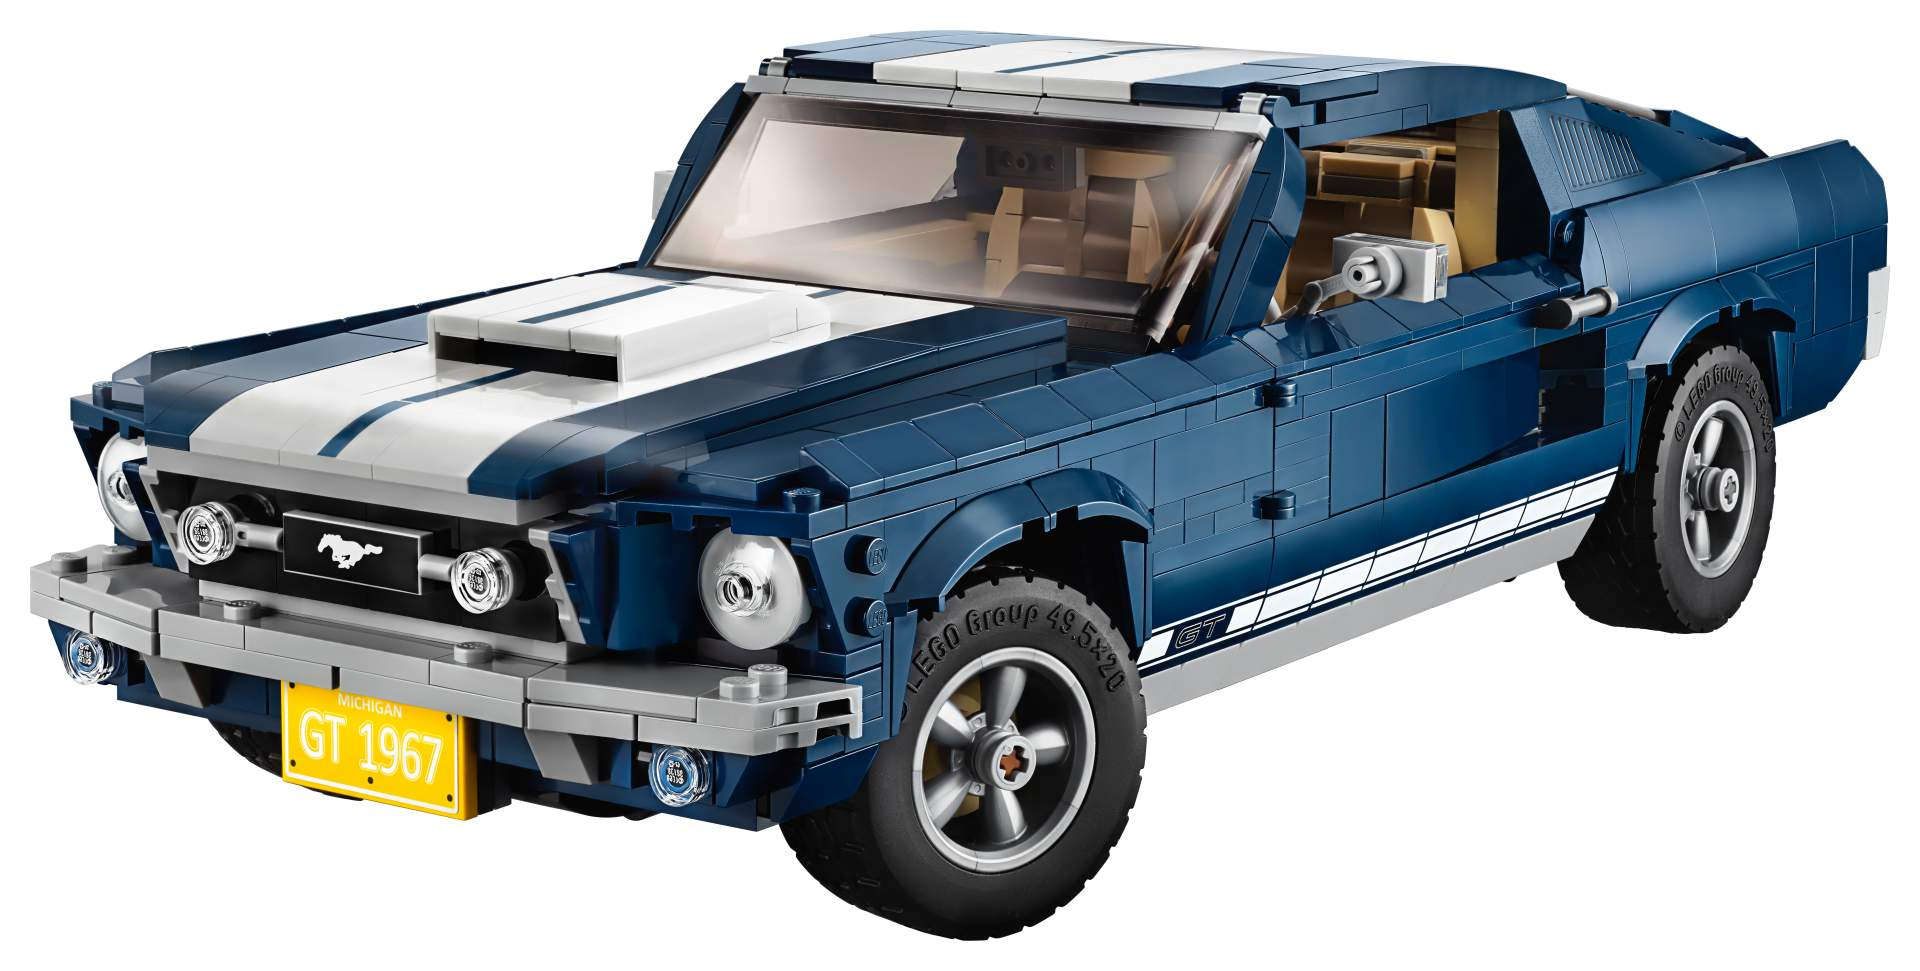 LEGO Ford Mustang Fastback 1967 16